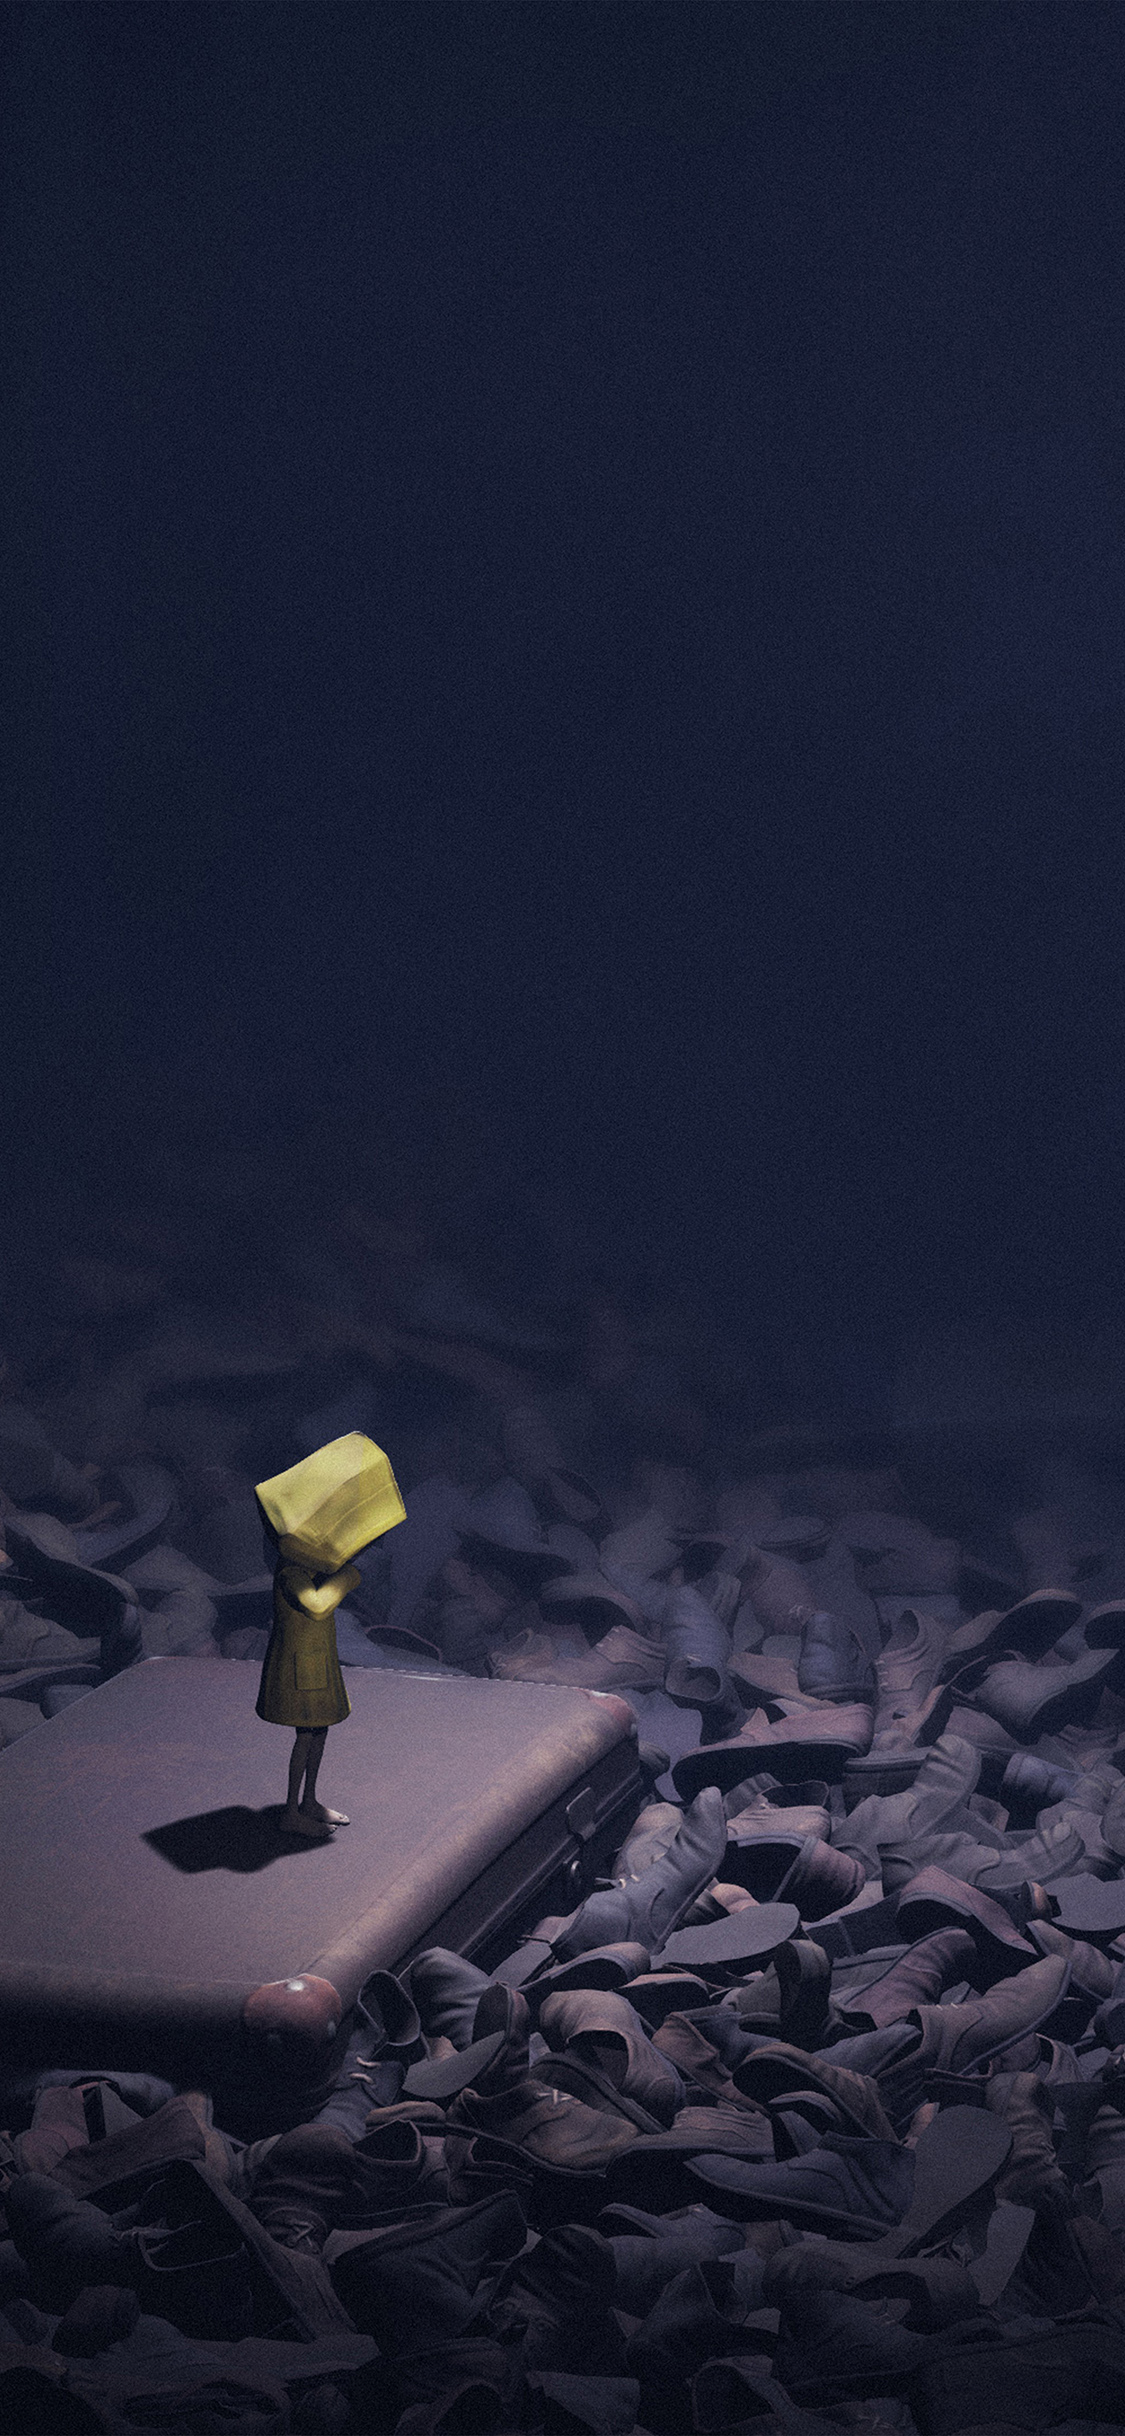 Papers Co Iphone Wallpaper At30 Little Nightmares Dark Anime